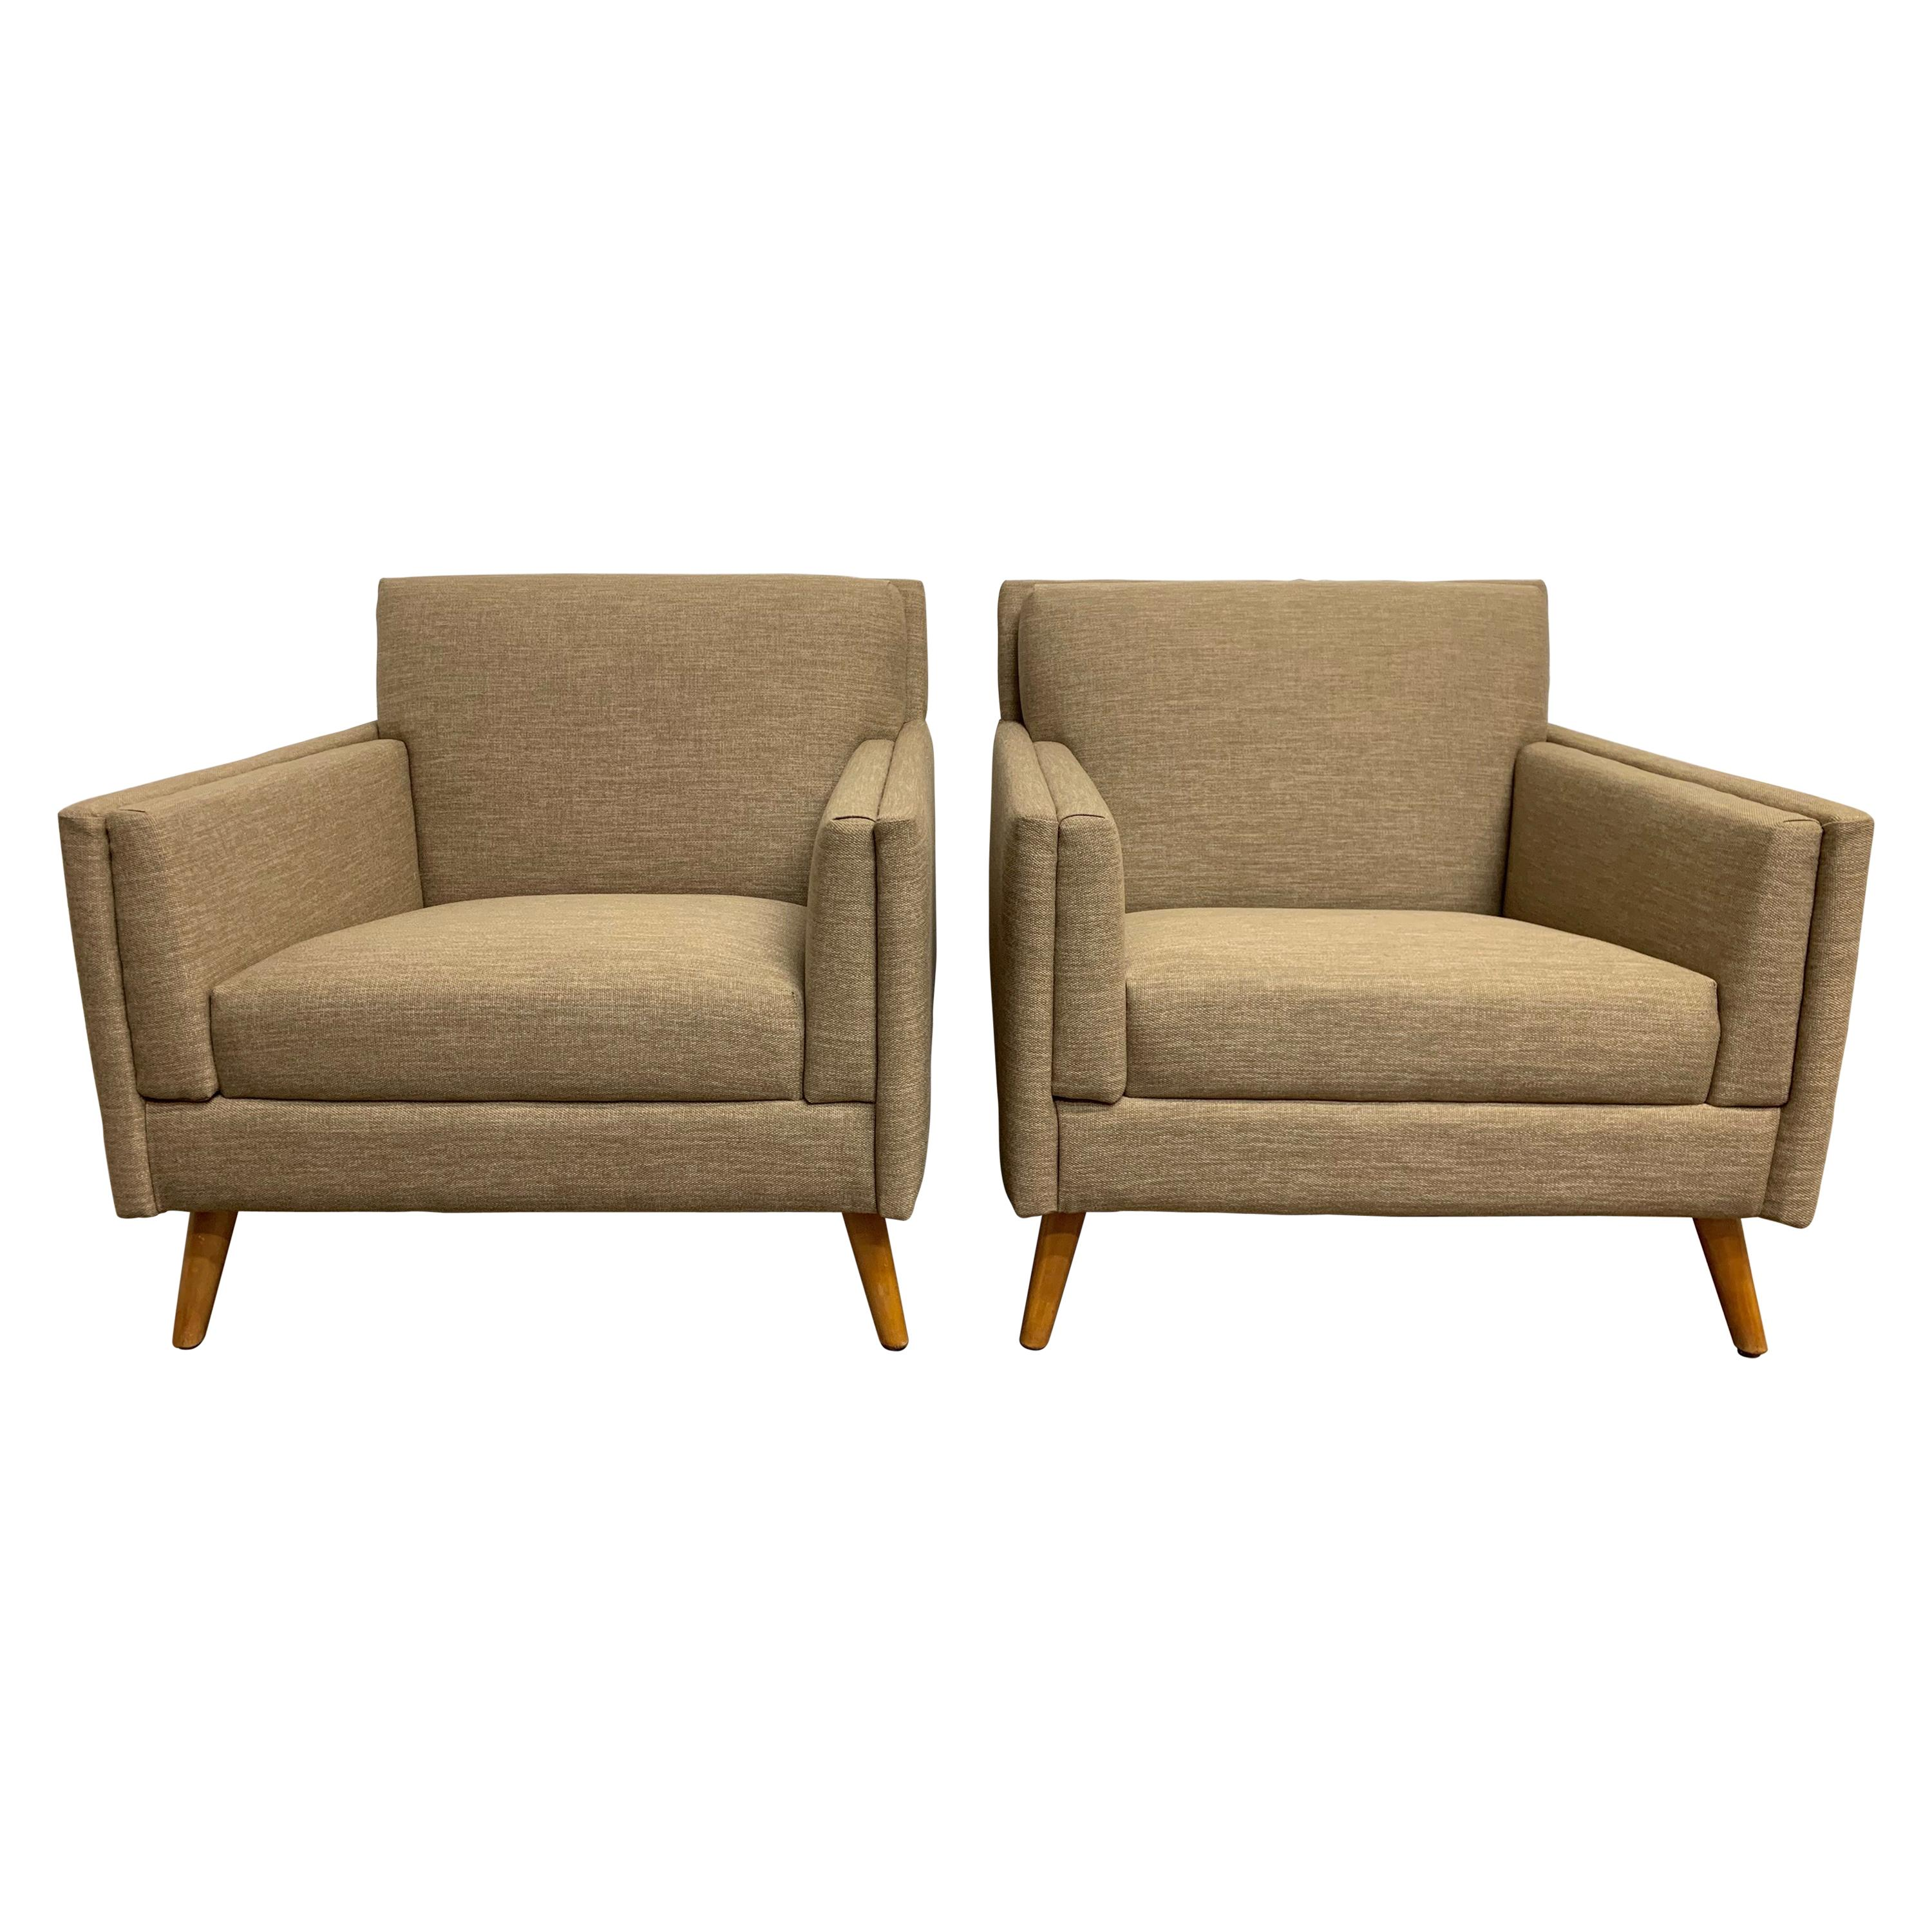 Pair of 1950s Lounge Chairs